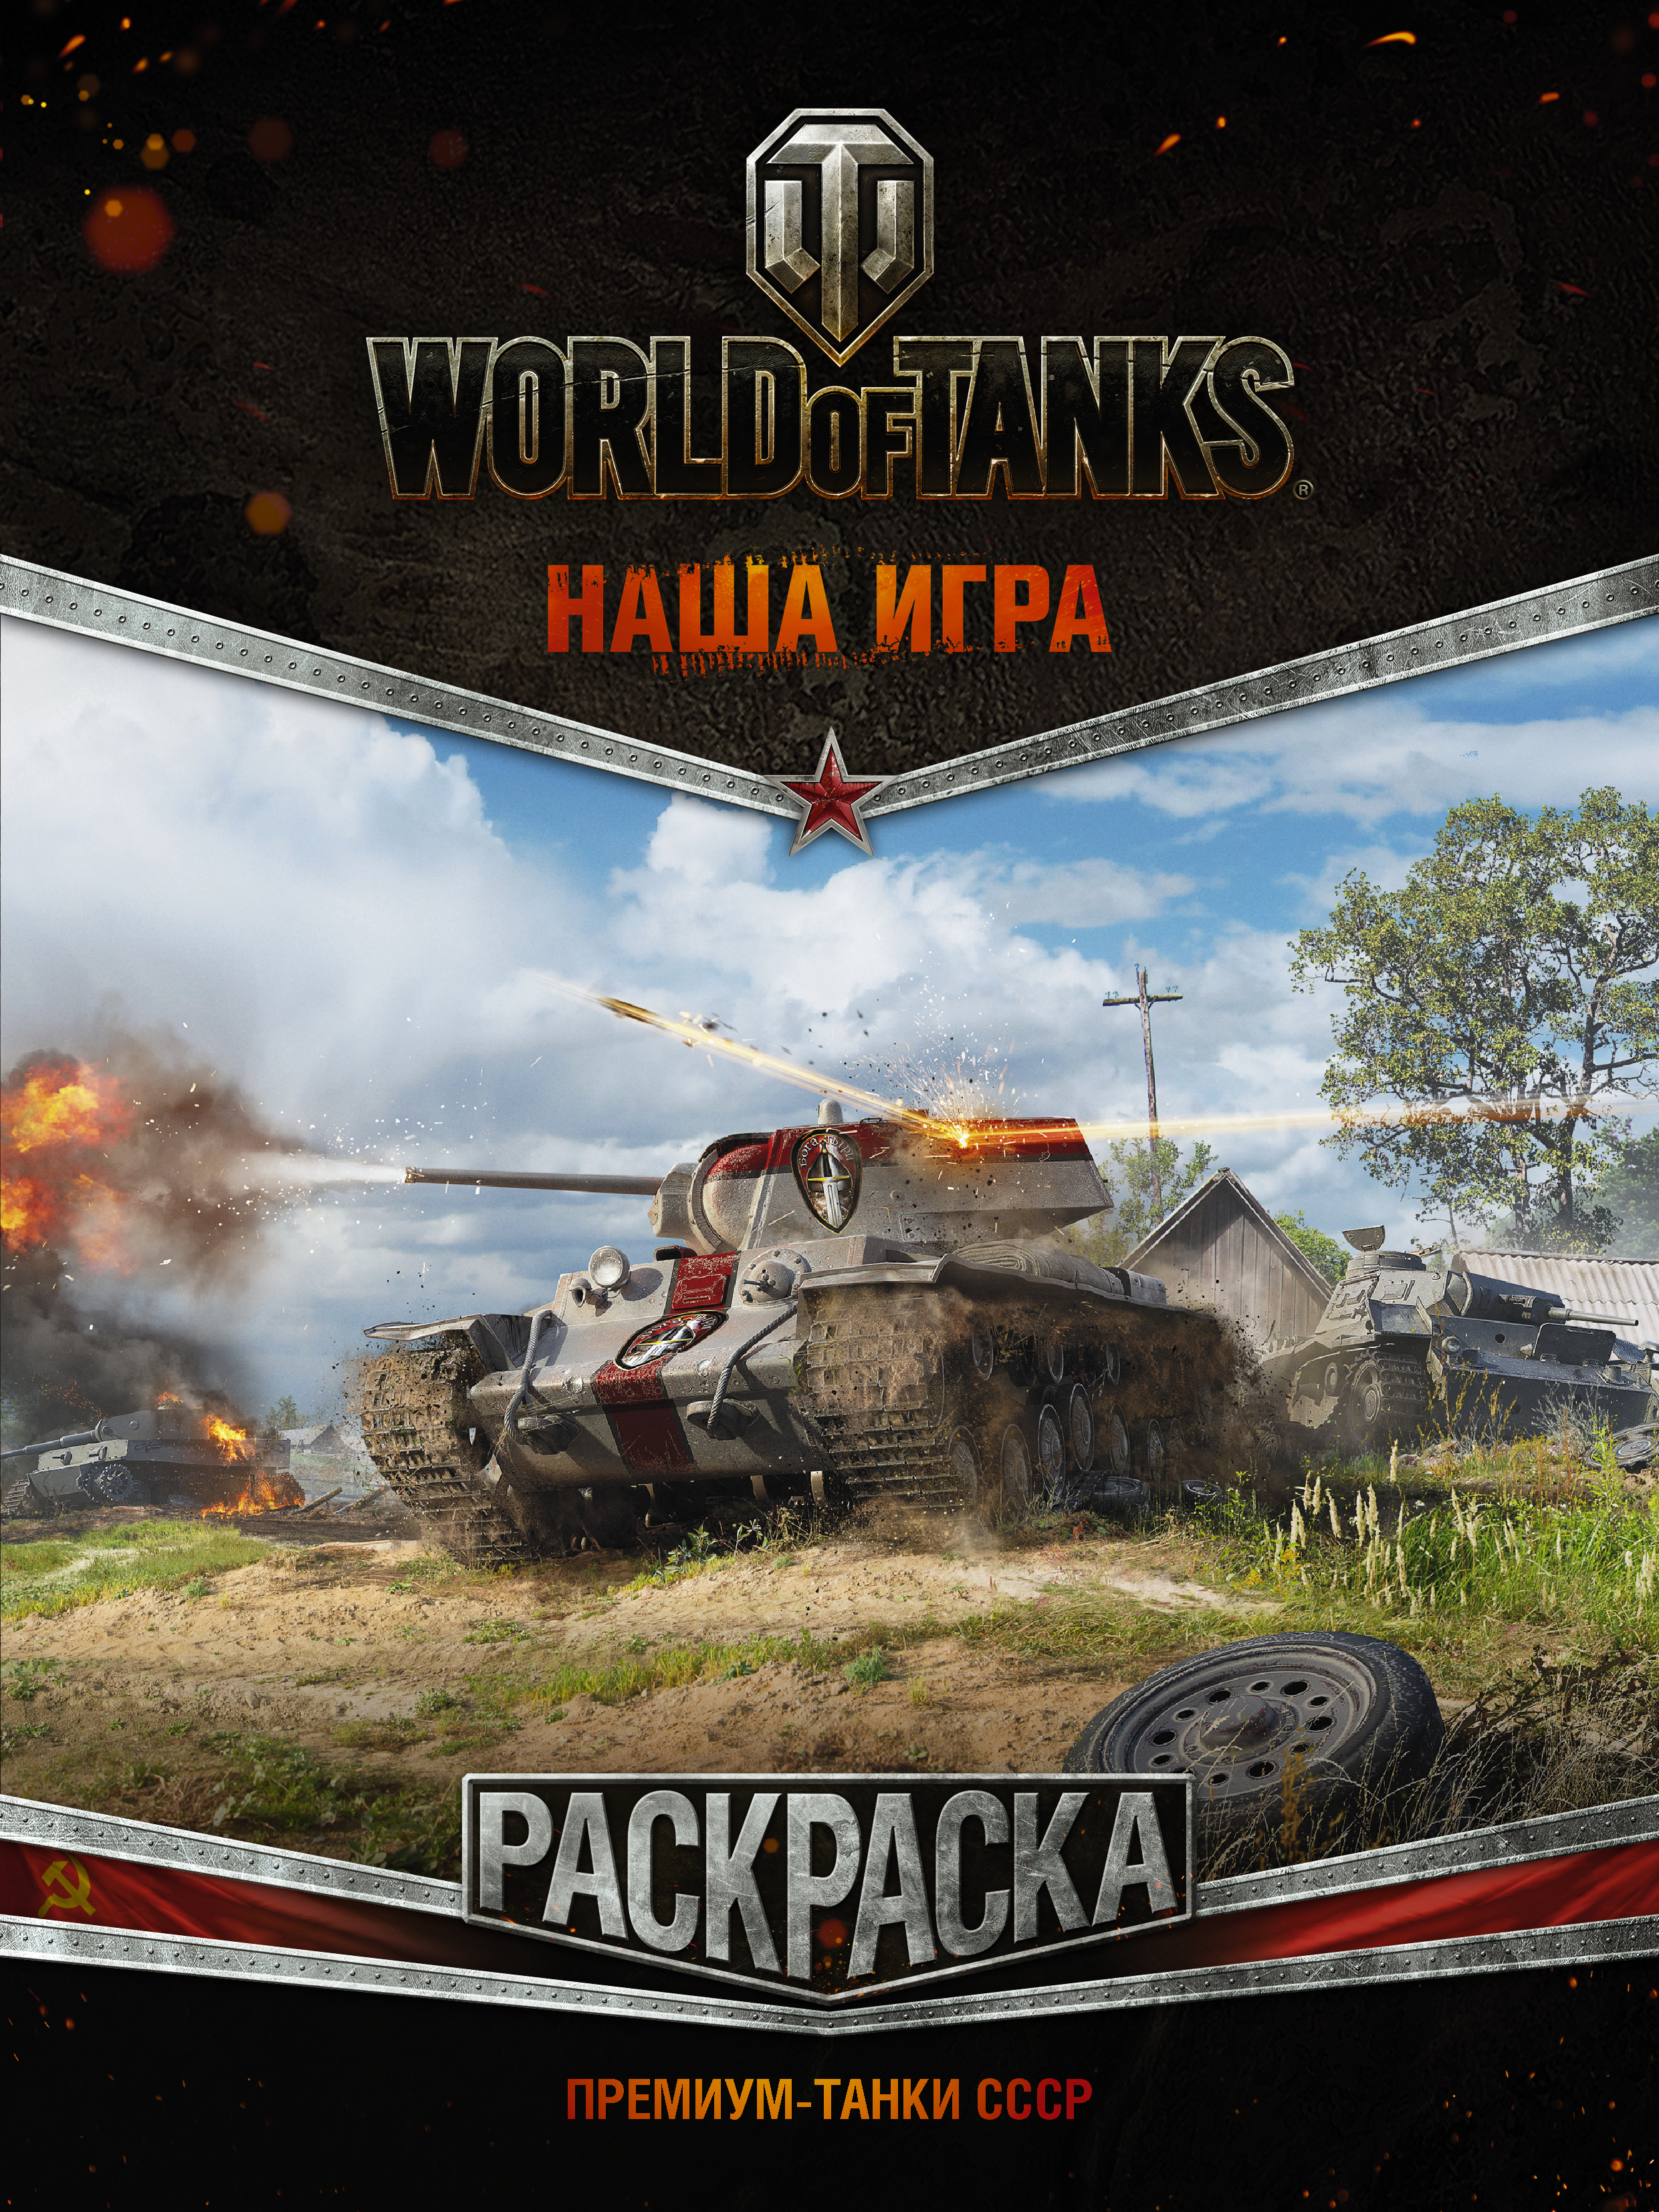 . World of Tanks. Раскраска. Премиум-танки СССР origami party games 10344079 educational toys logic game toy